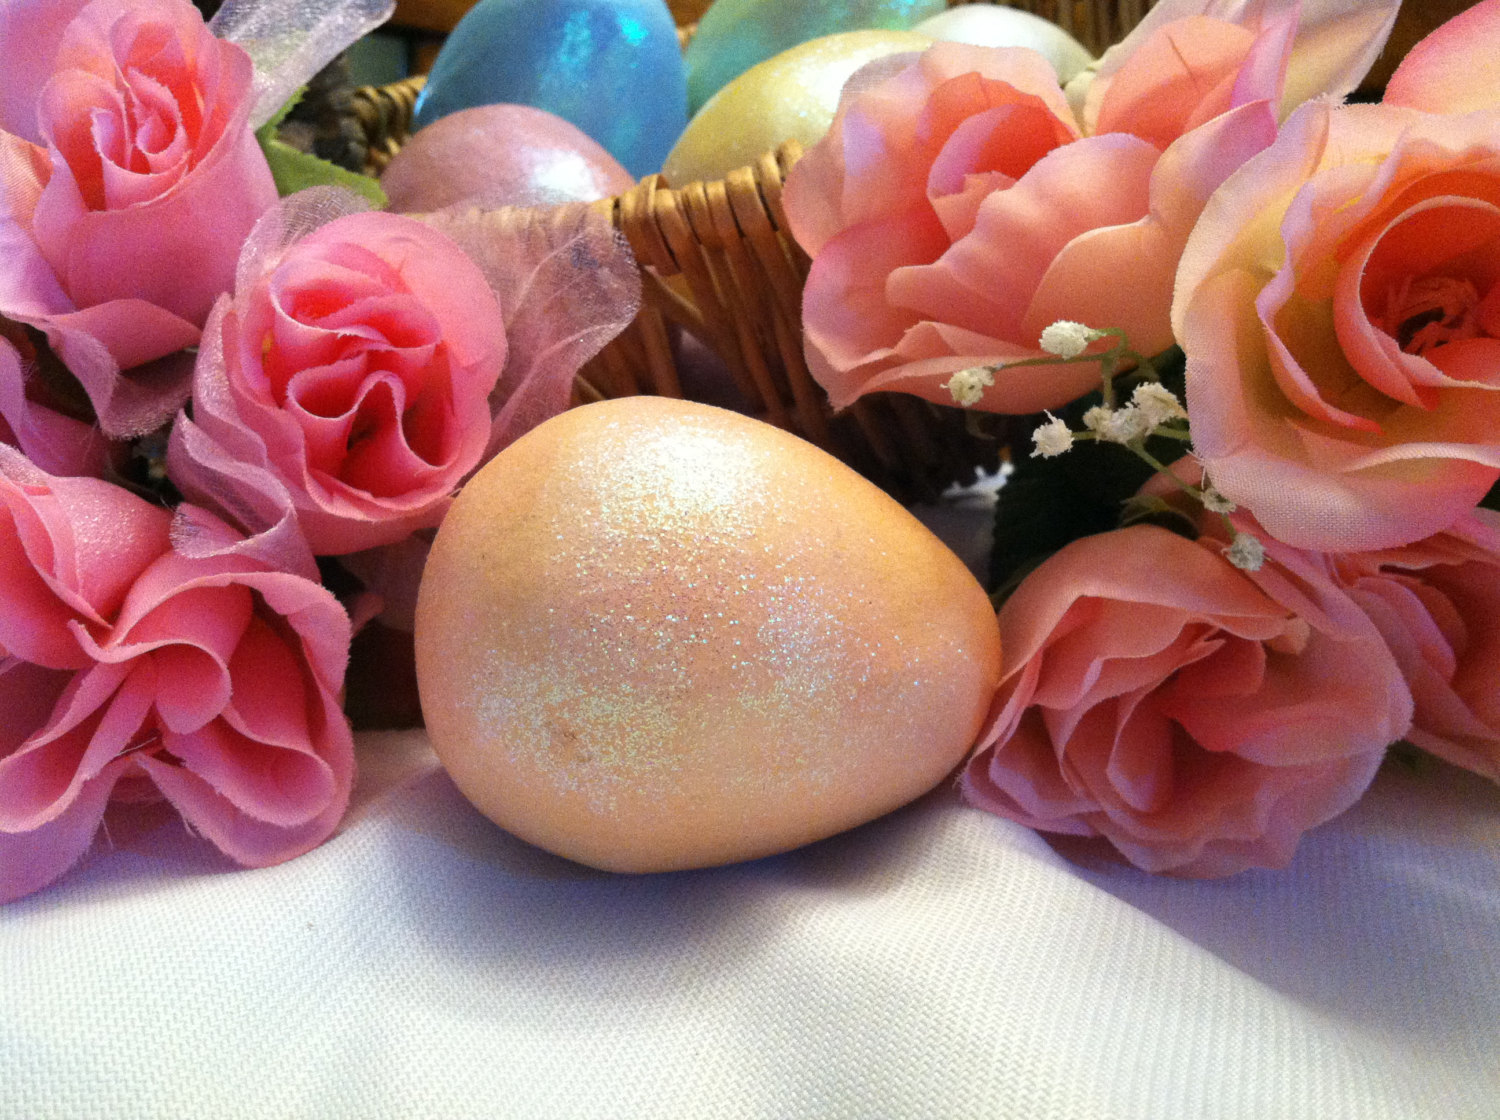 Ceramic Peach Orange Colored Egg for Easter Display - glitter glazed and with ra